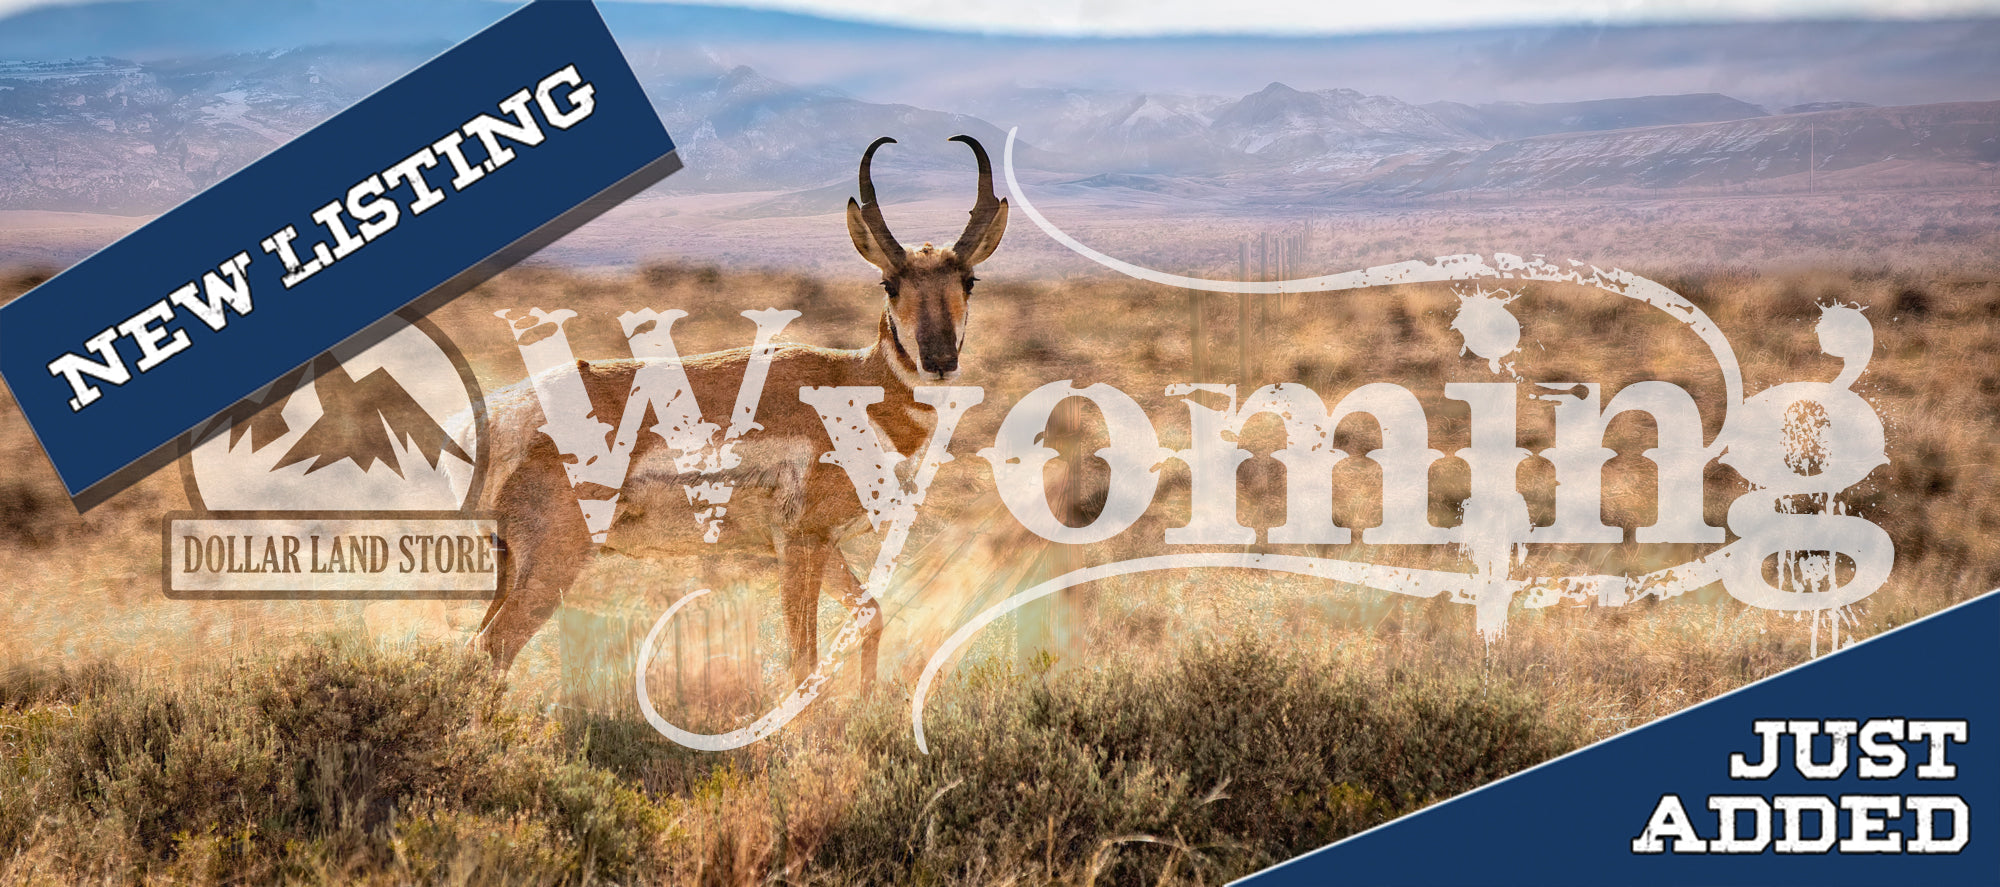 #L203600-1 40 Acres in Red Desert Area, Sweetwater County, Wyoming $12,500.00 ($137.11/Month)